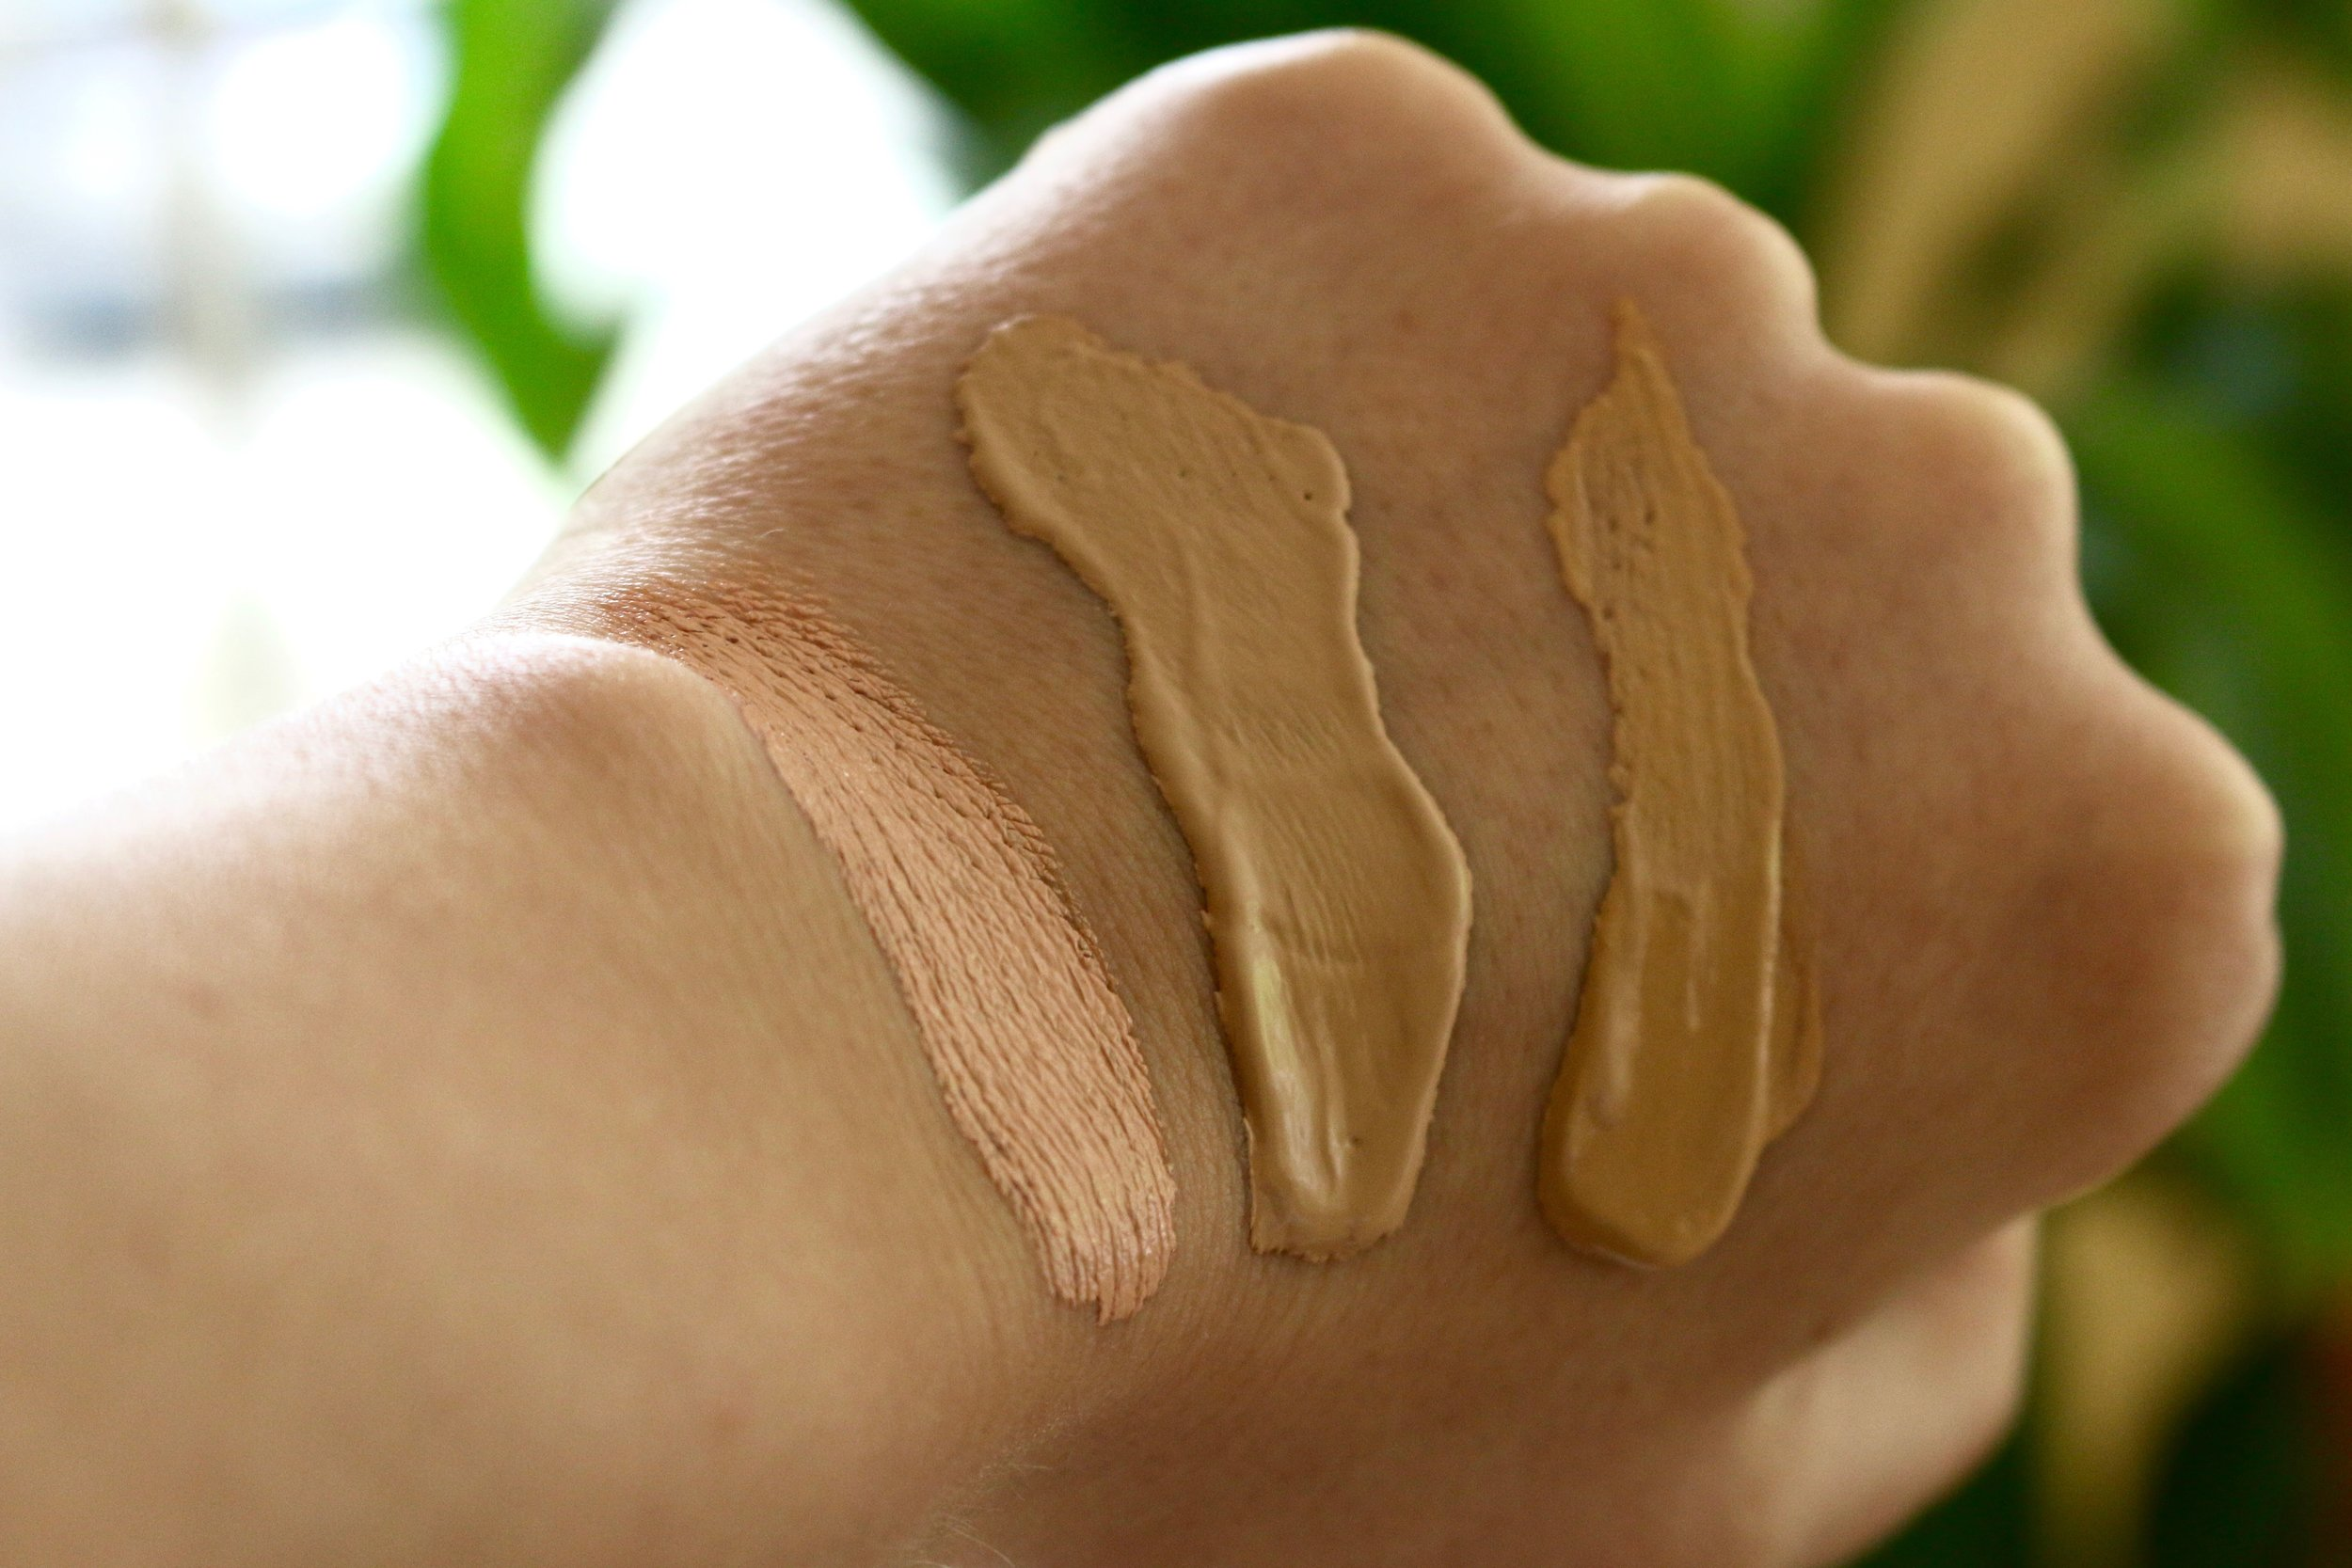 The Platinum SPF 45 Tinted BB Cream is a lightweight formula that has a tint of color for sheer coverage